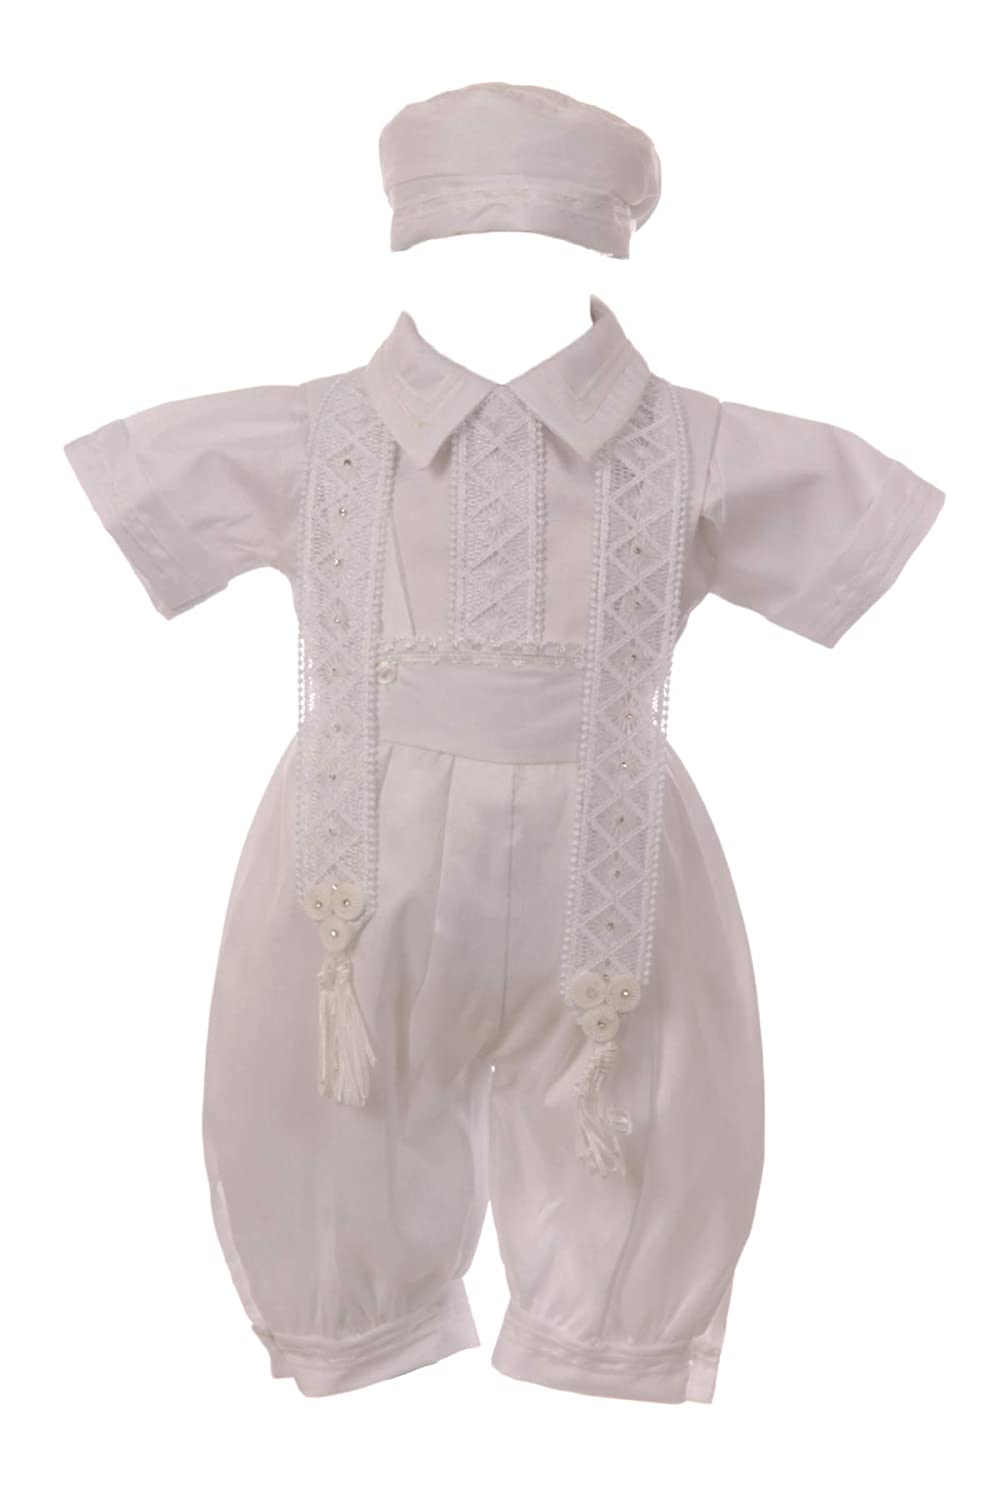 Baby Toddler Boys White Christening Baptism Set Outfit Poly Shantung Suspender Hat Stole